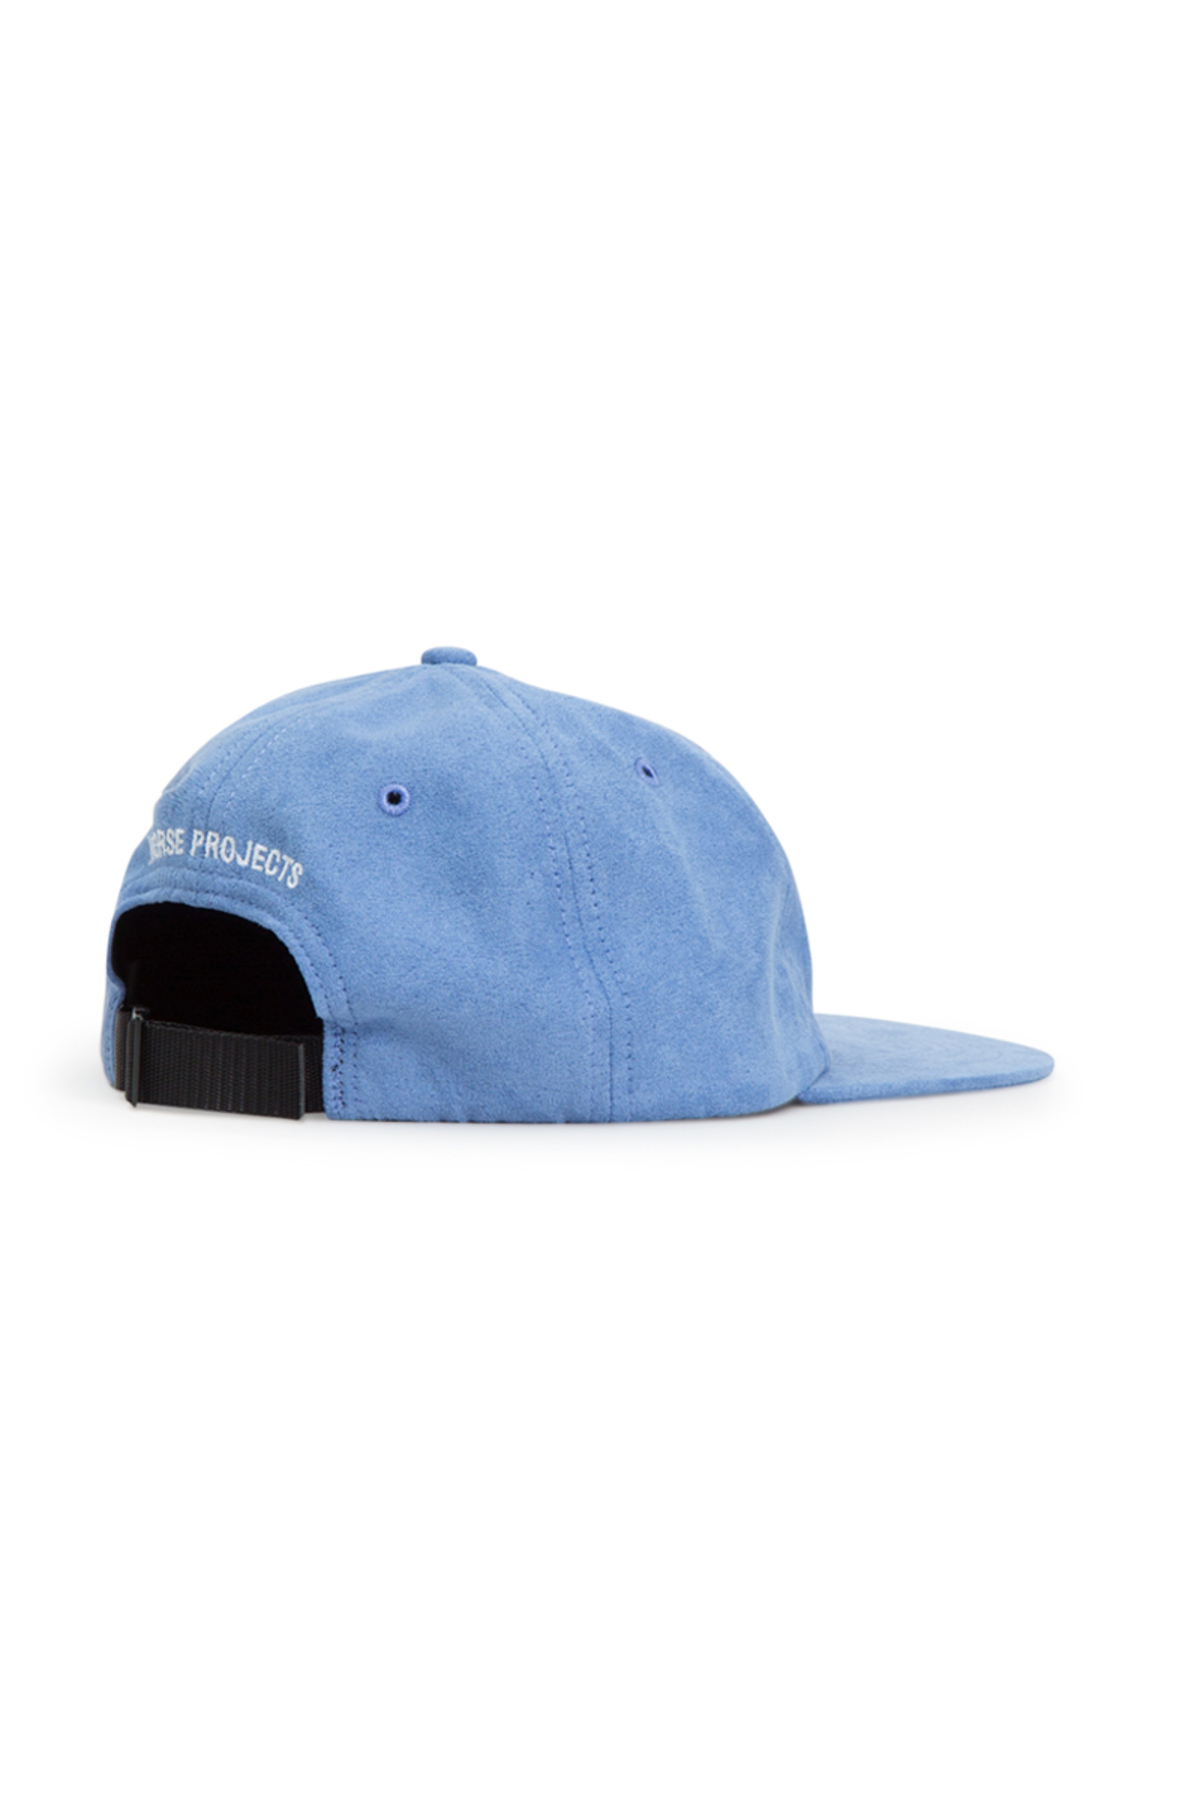 14818f26abc8b Norse Projects Light Faux Suede Flat Cap - Boundary Blue